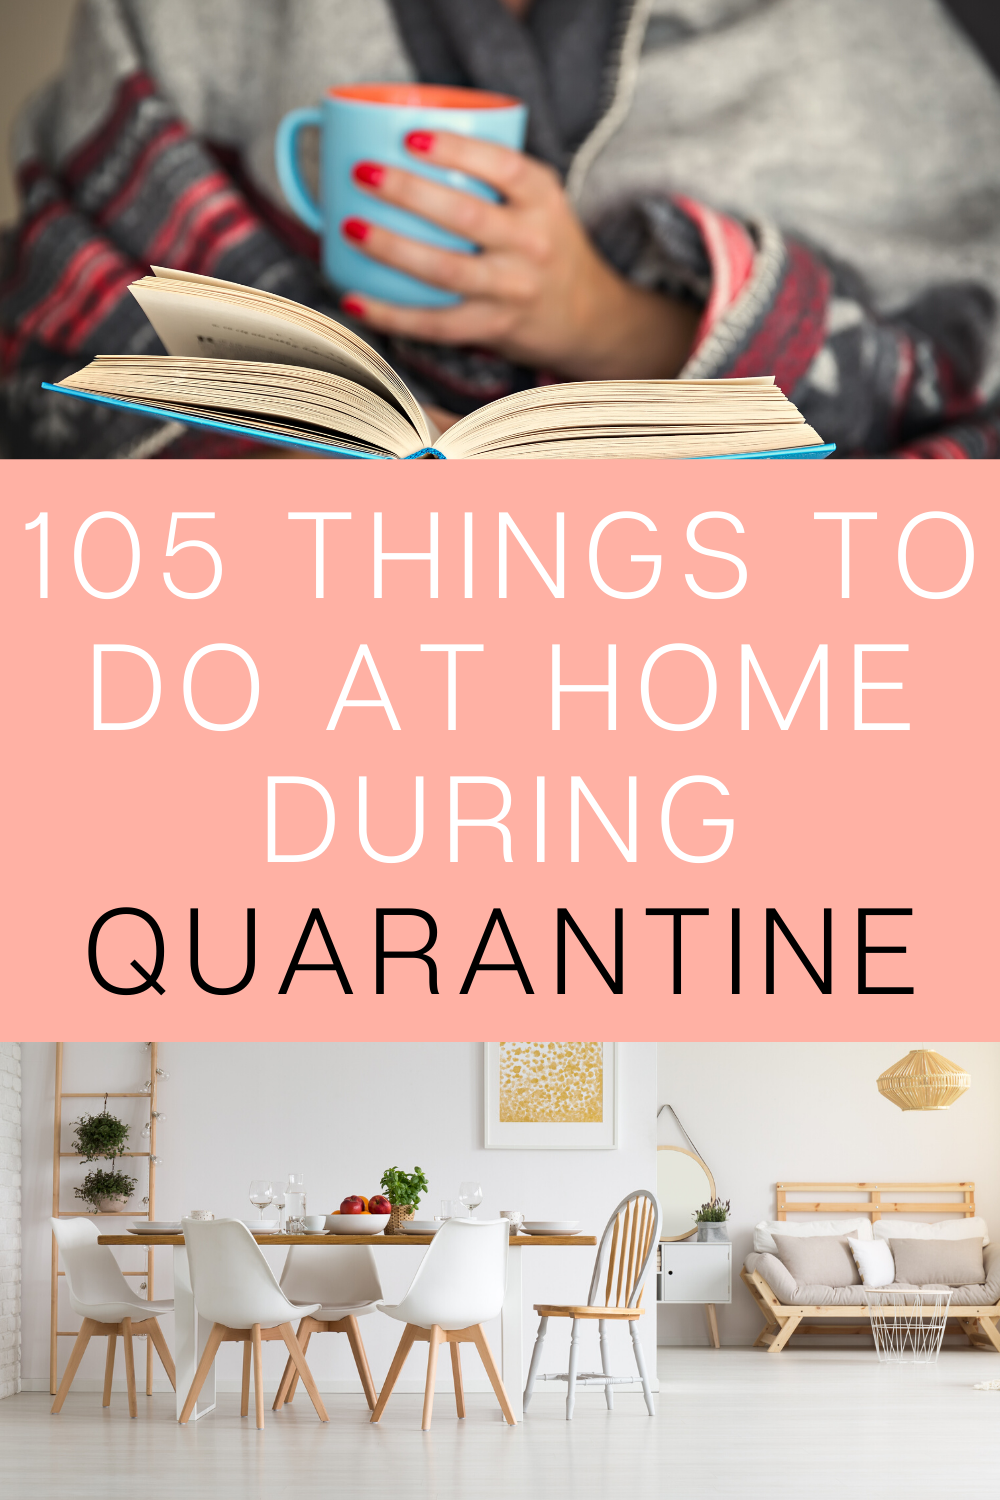 If you have a lot of free time to spend at home, here are some great ideas to fill your time. Be productive with your time alone at home. There are also creative ideas for when you're bored with friends, family, or kids and teens. These are great for inside on a rainy day, or when a pandemic hits. Check out these 105 things to do at home that aren't Netflix!